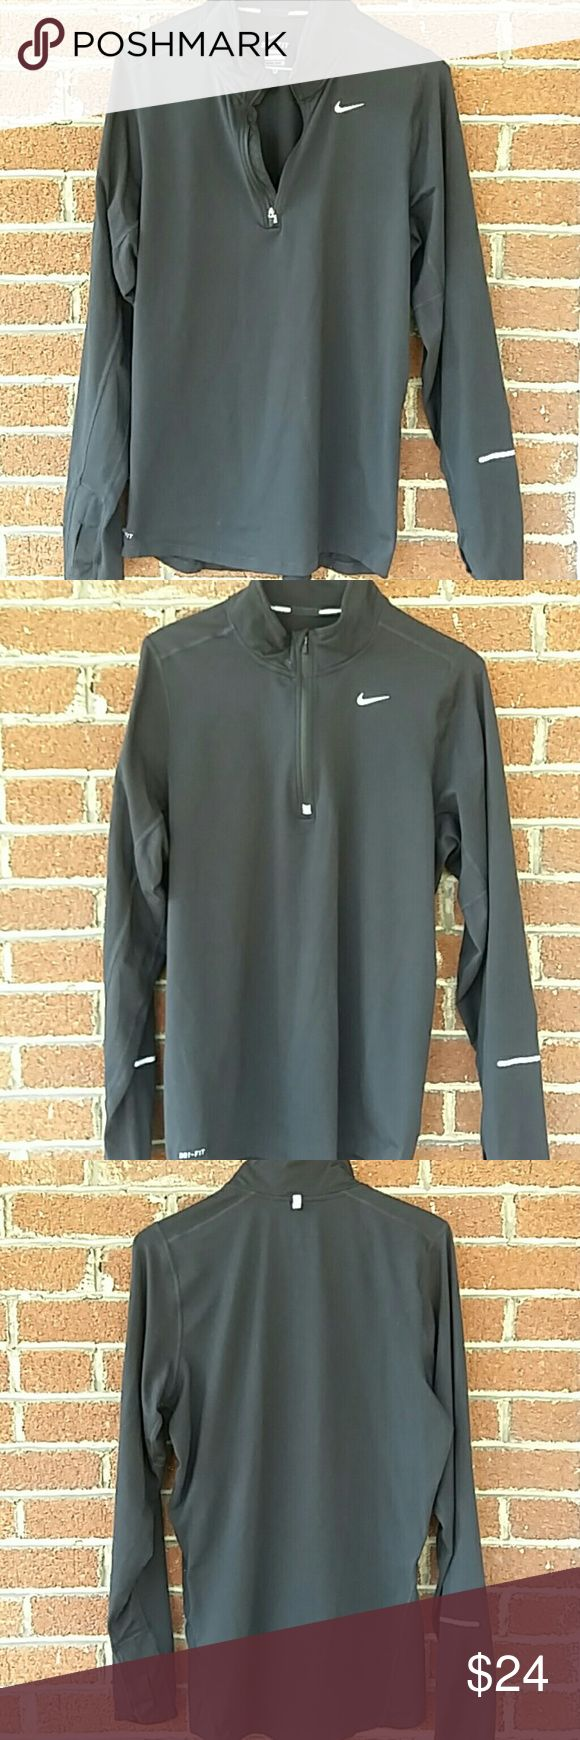 Men's Nike Pullover shirt Men's Black Nike Pullover Shirt . Size small zipper from chest to neck. 88% polyester 12% spandex. In excellent condition. Nike Jackets & Coats Lightweight & Shirt Jackets